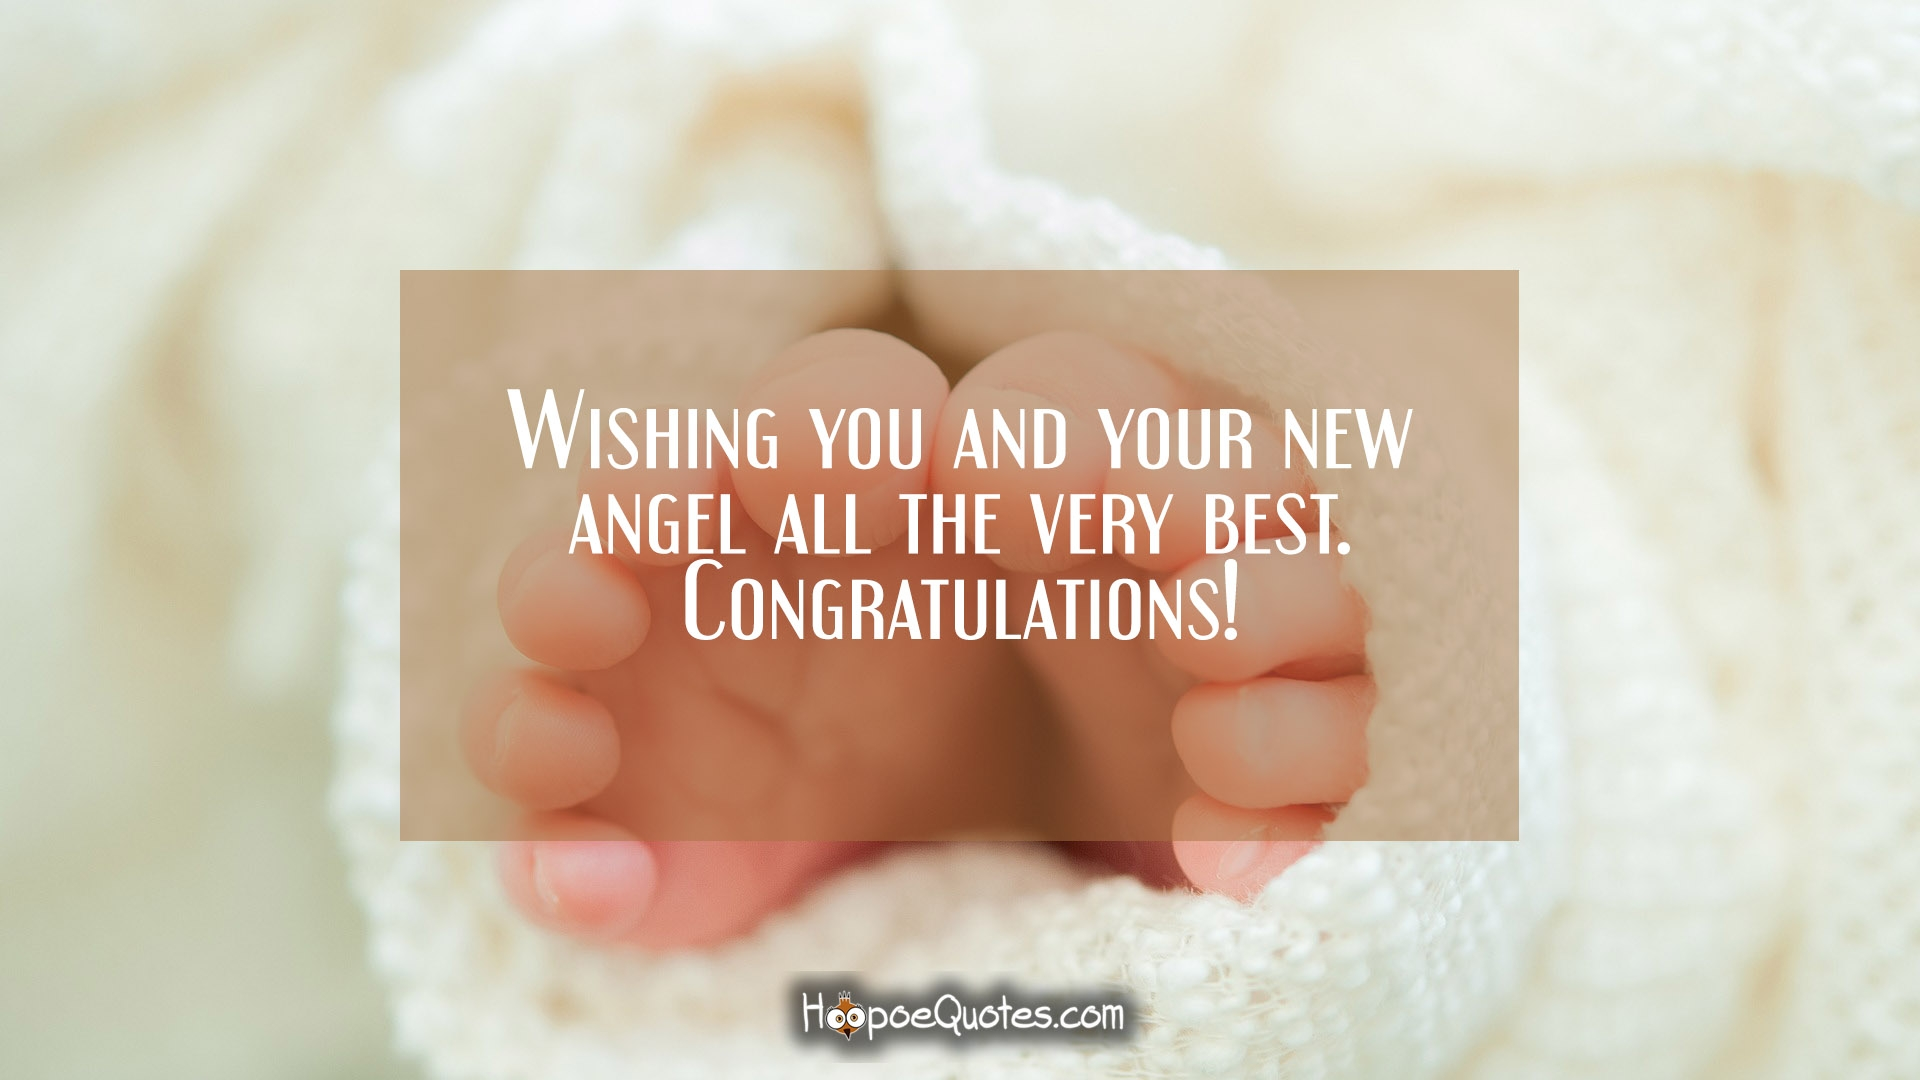 Trendy Hebrew Congratulations On New Baby Images Wishing You Your New Angel All Very Congratulations Congratulations On New Baby baby shower Congratulations On New Baby